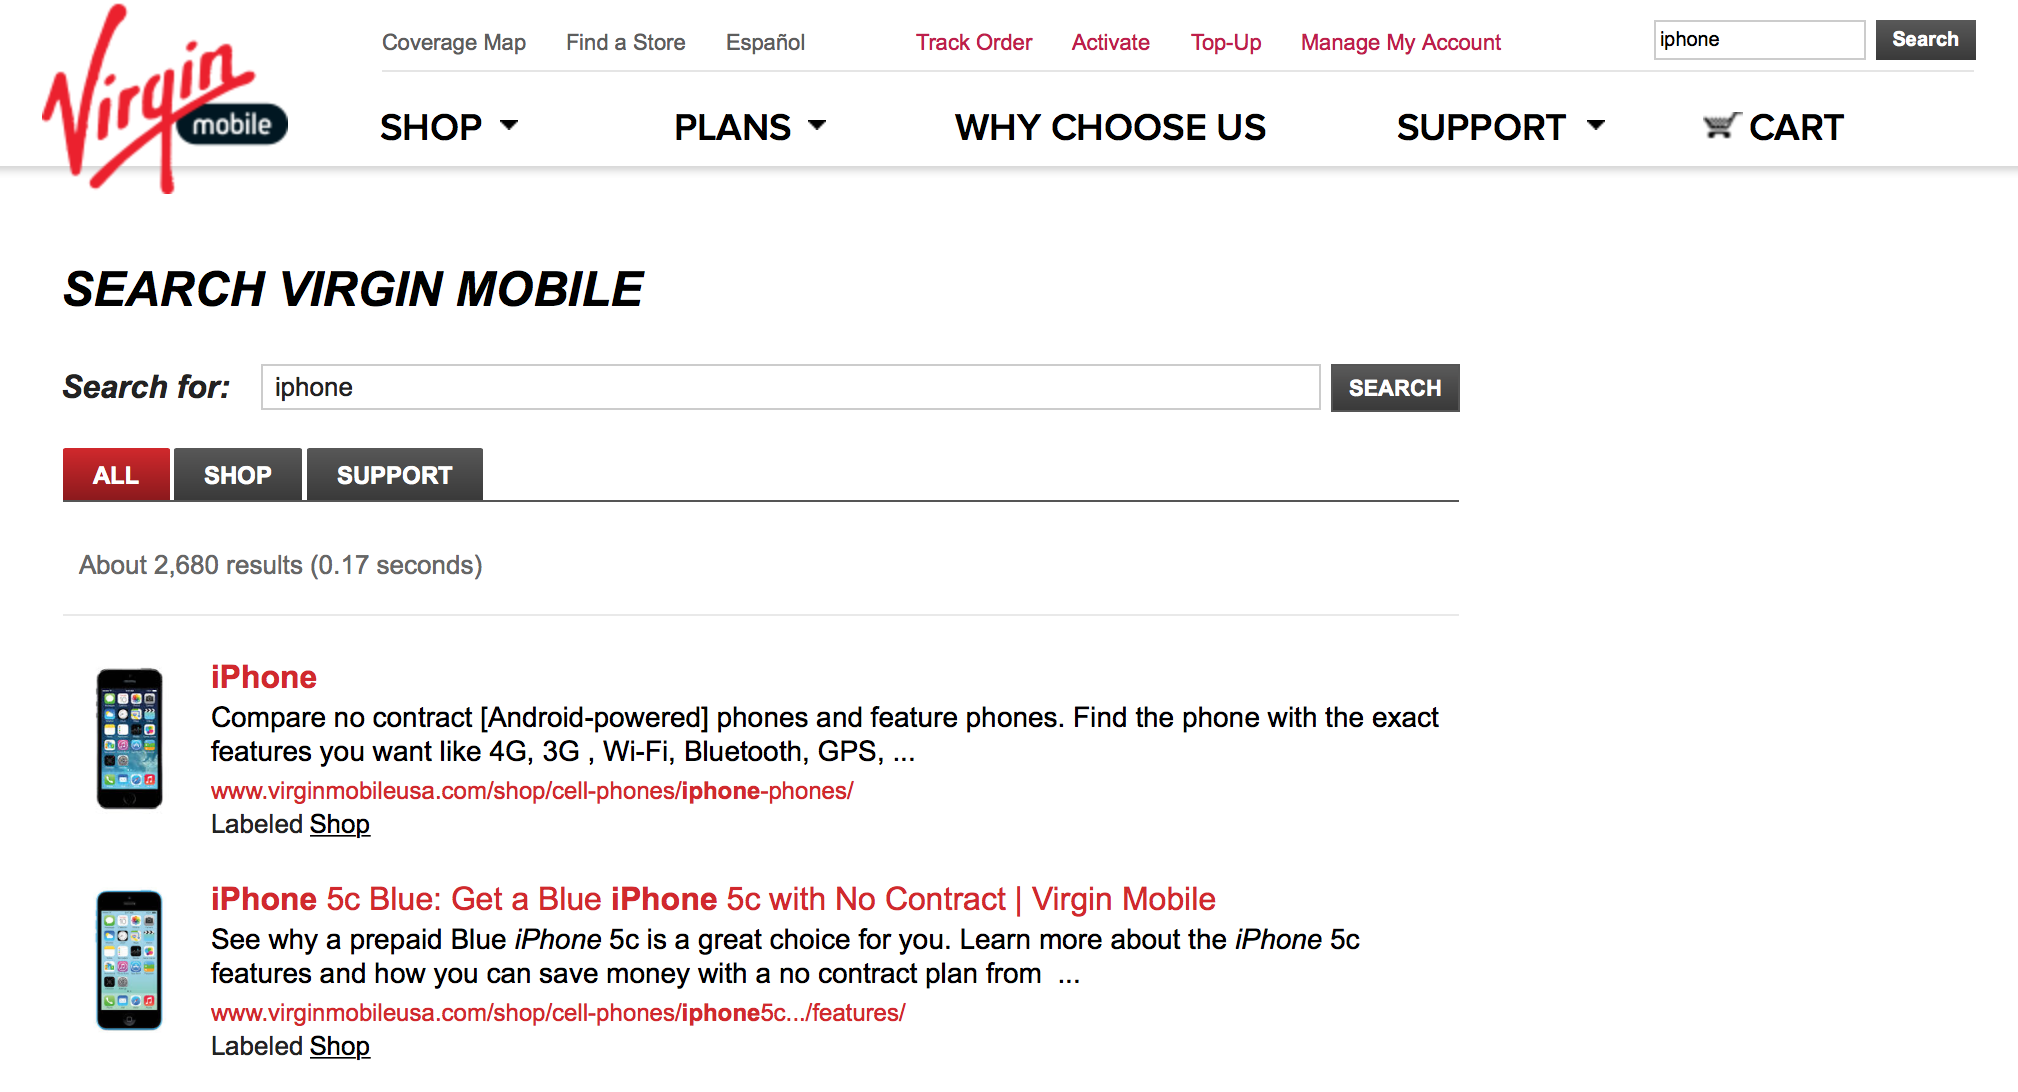 Virgin Mobile USA iPhone Search